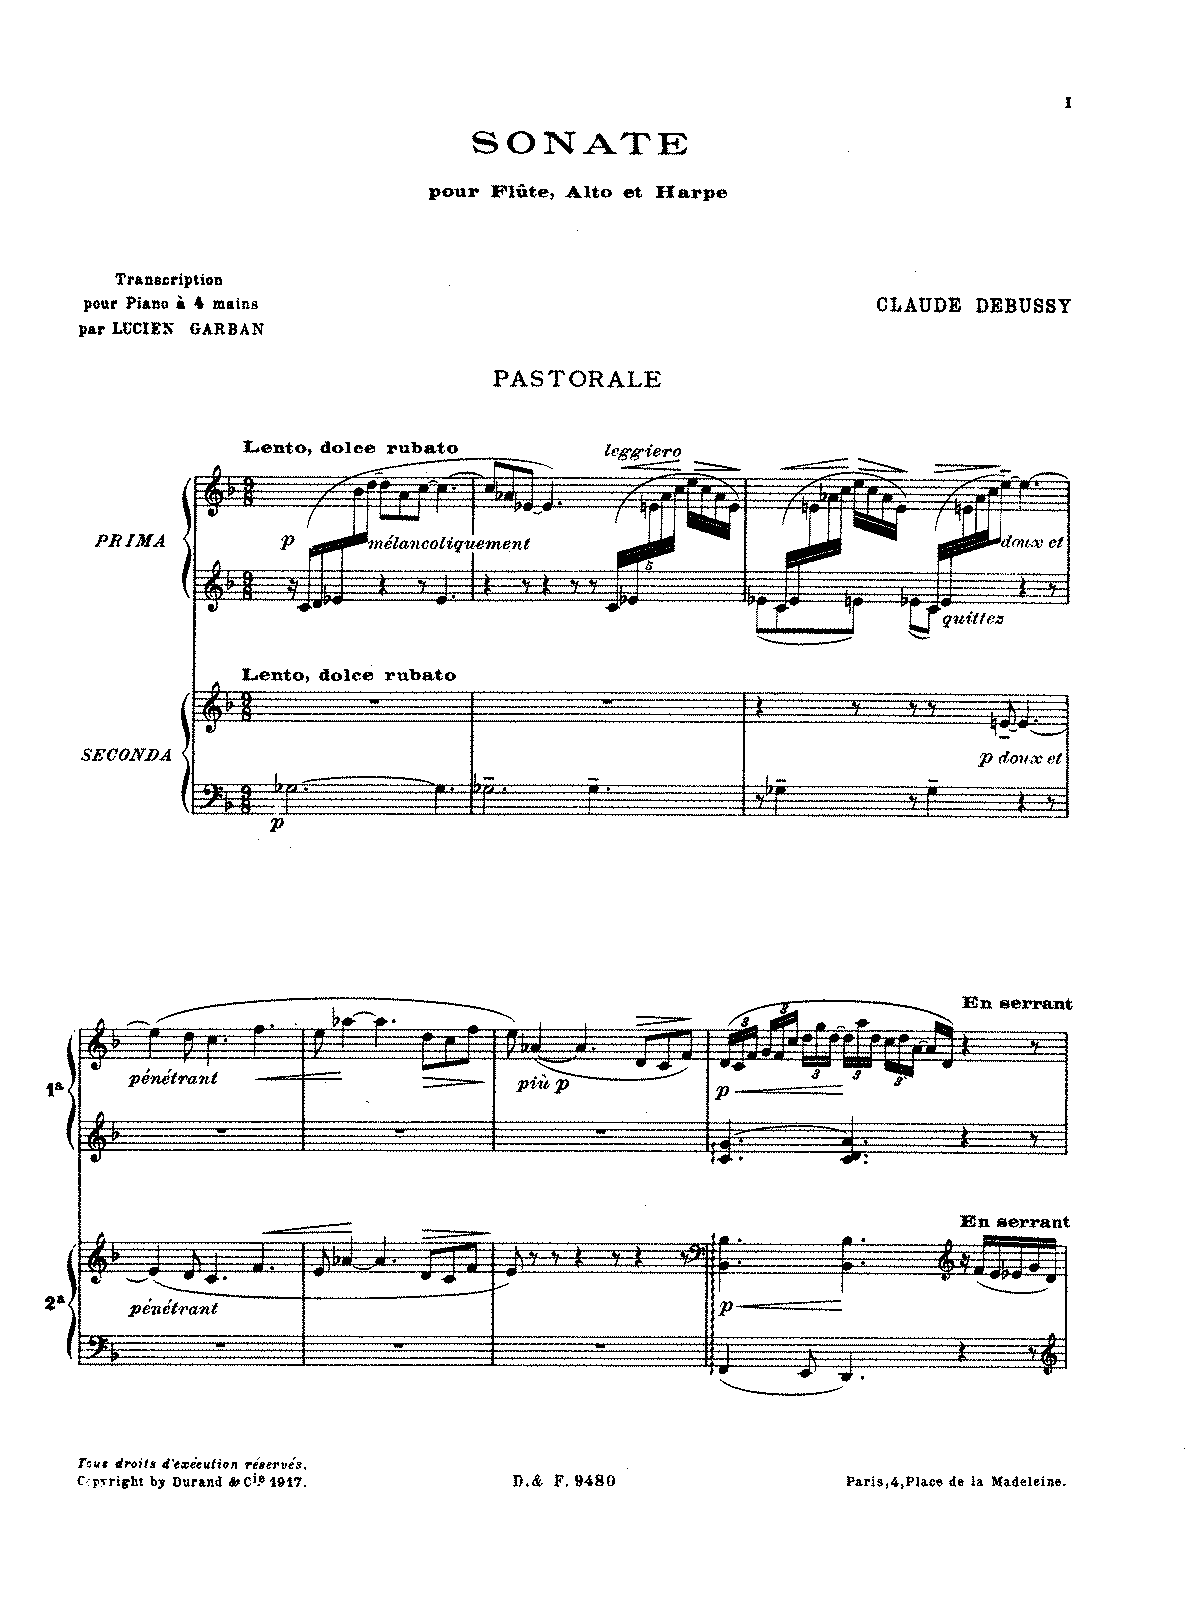 PMLP34399-Debussy - Sonata for Flute, Viola and Harp (trans. Garban - piano 4 hands).pdf